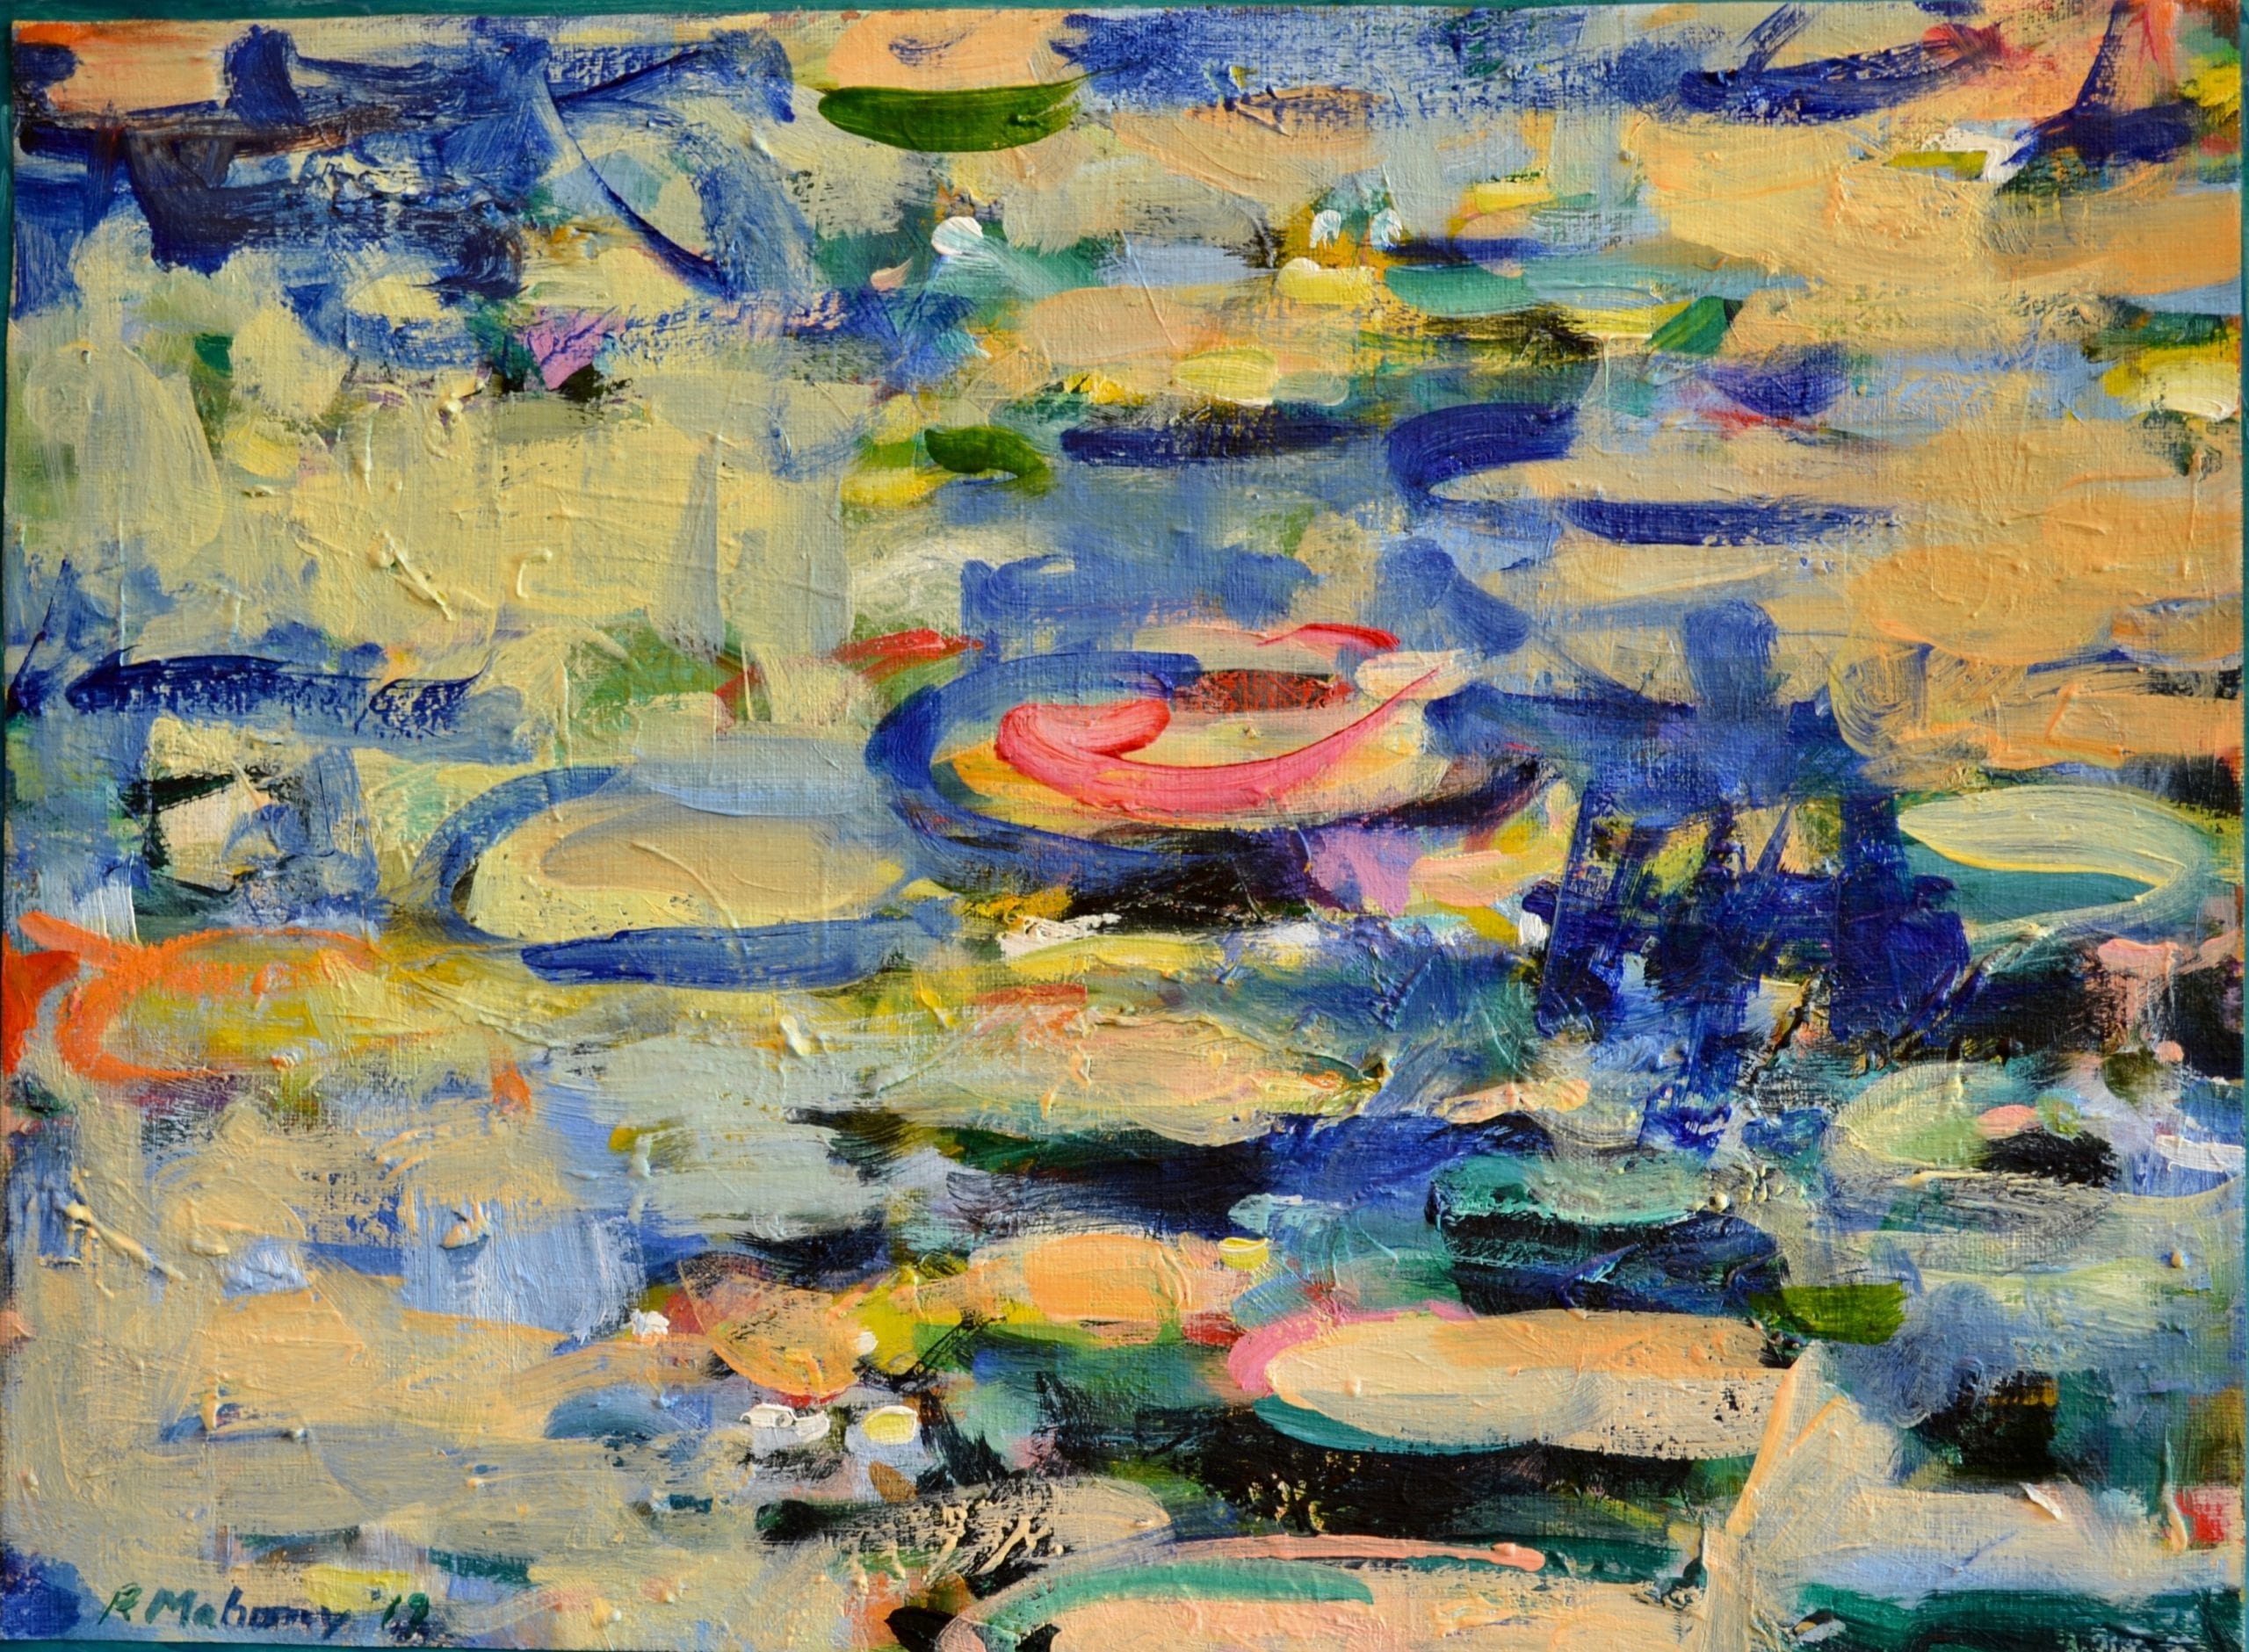 """Pat Mahony - Lil Pads - Pond - 2020 - Oil on Canvas - 12"""" x 16"""""""